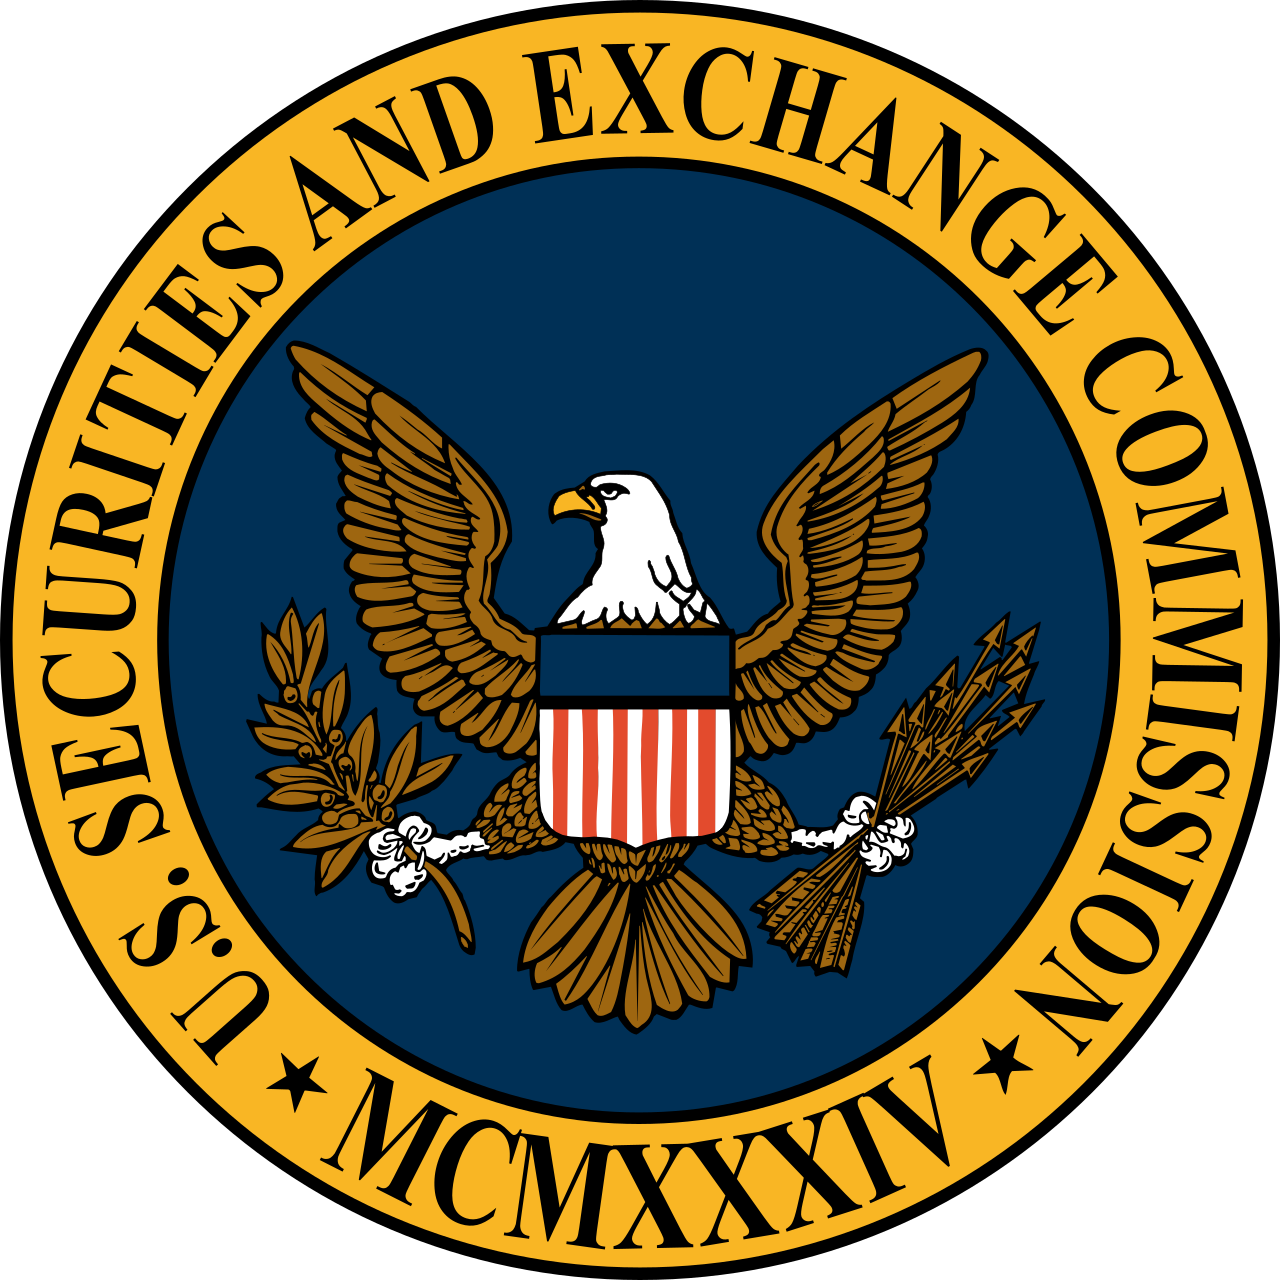 No more need to complain to the US SEC because the SEC is now aware of Lennar Insider Trading by several unethical Lennar executives making fortunes